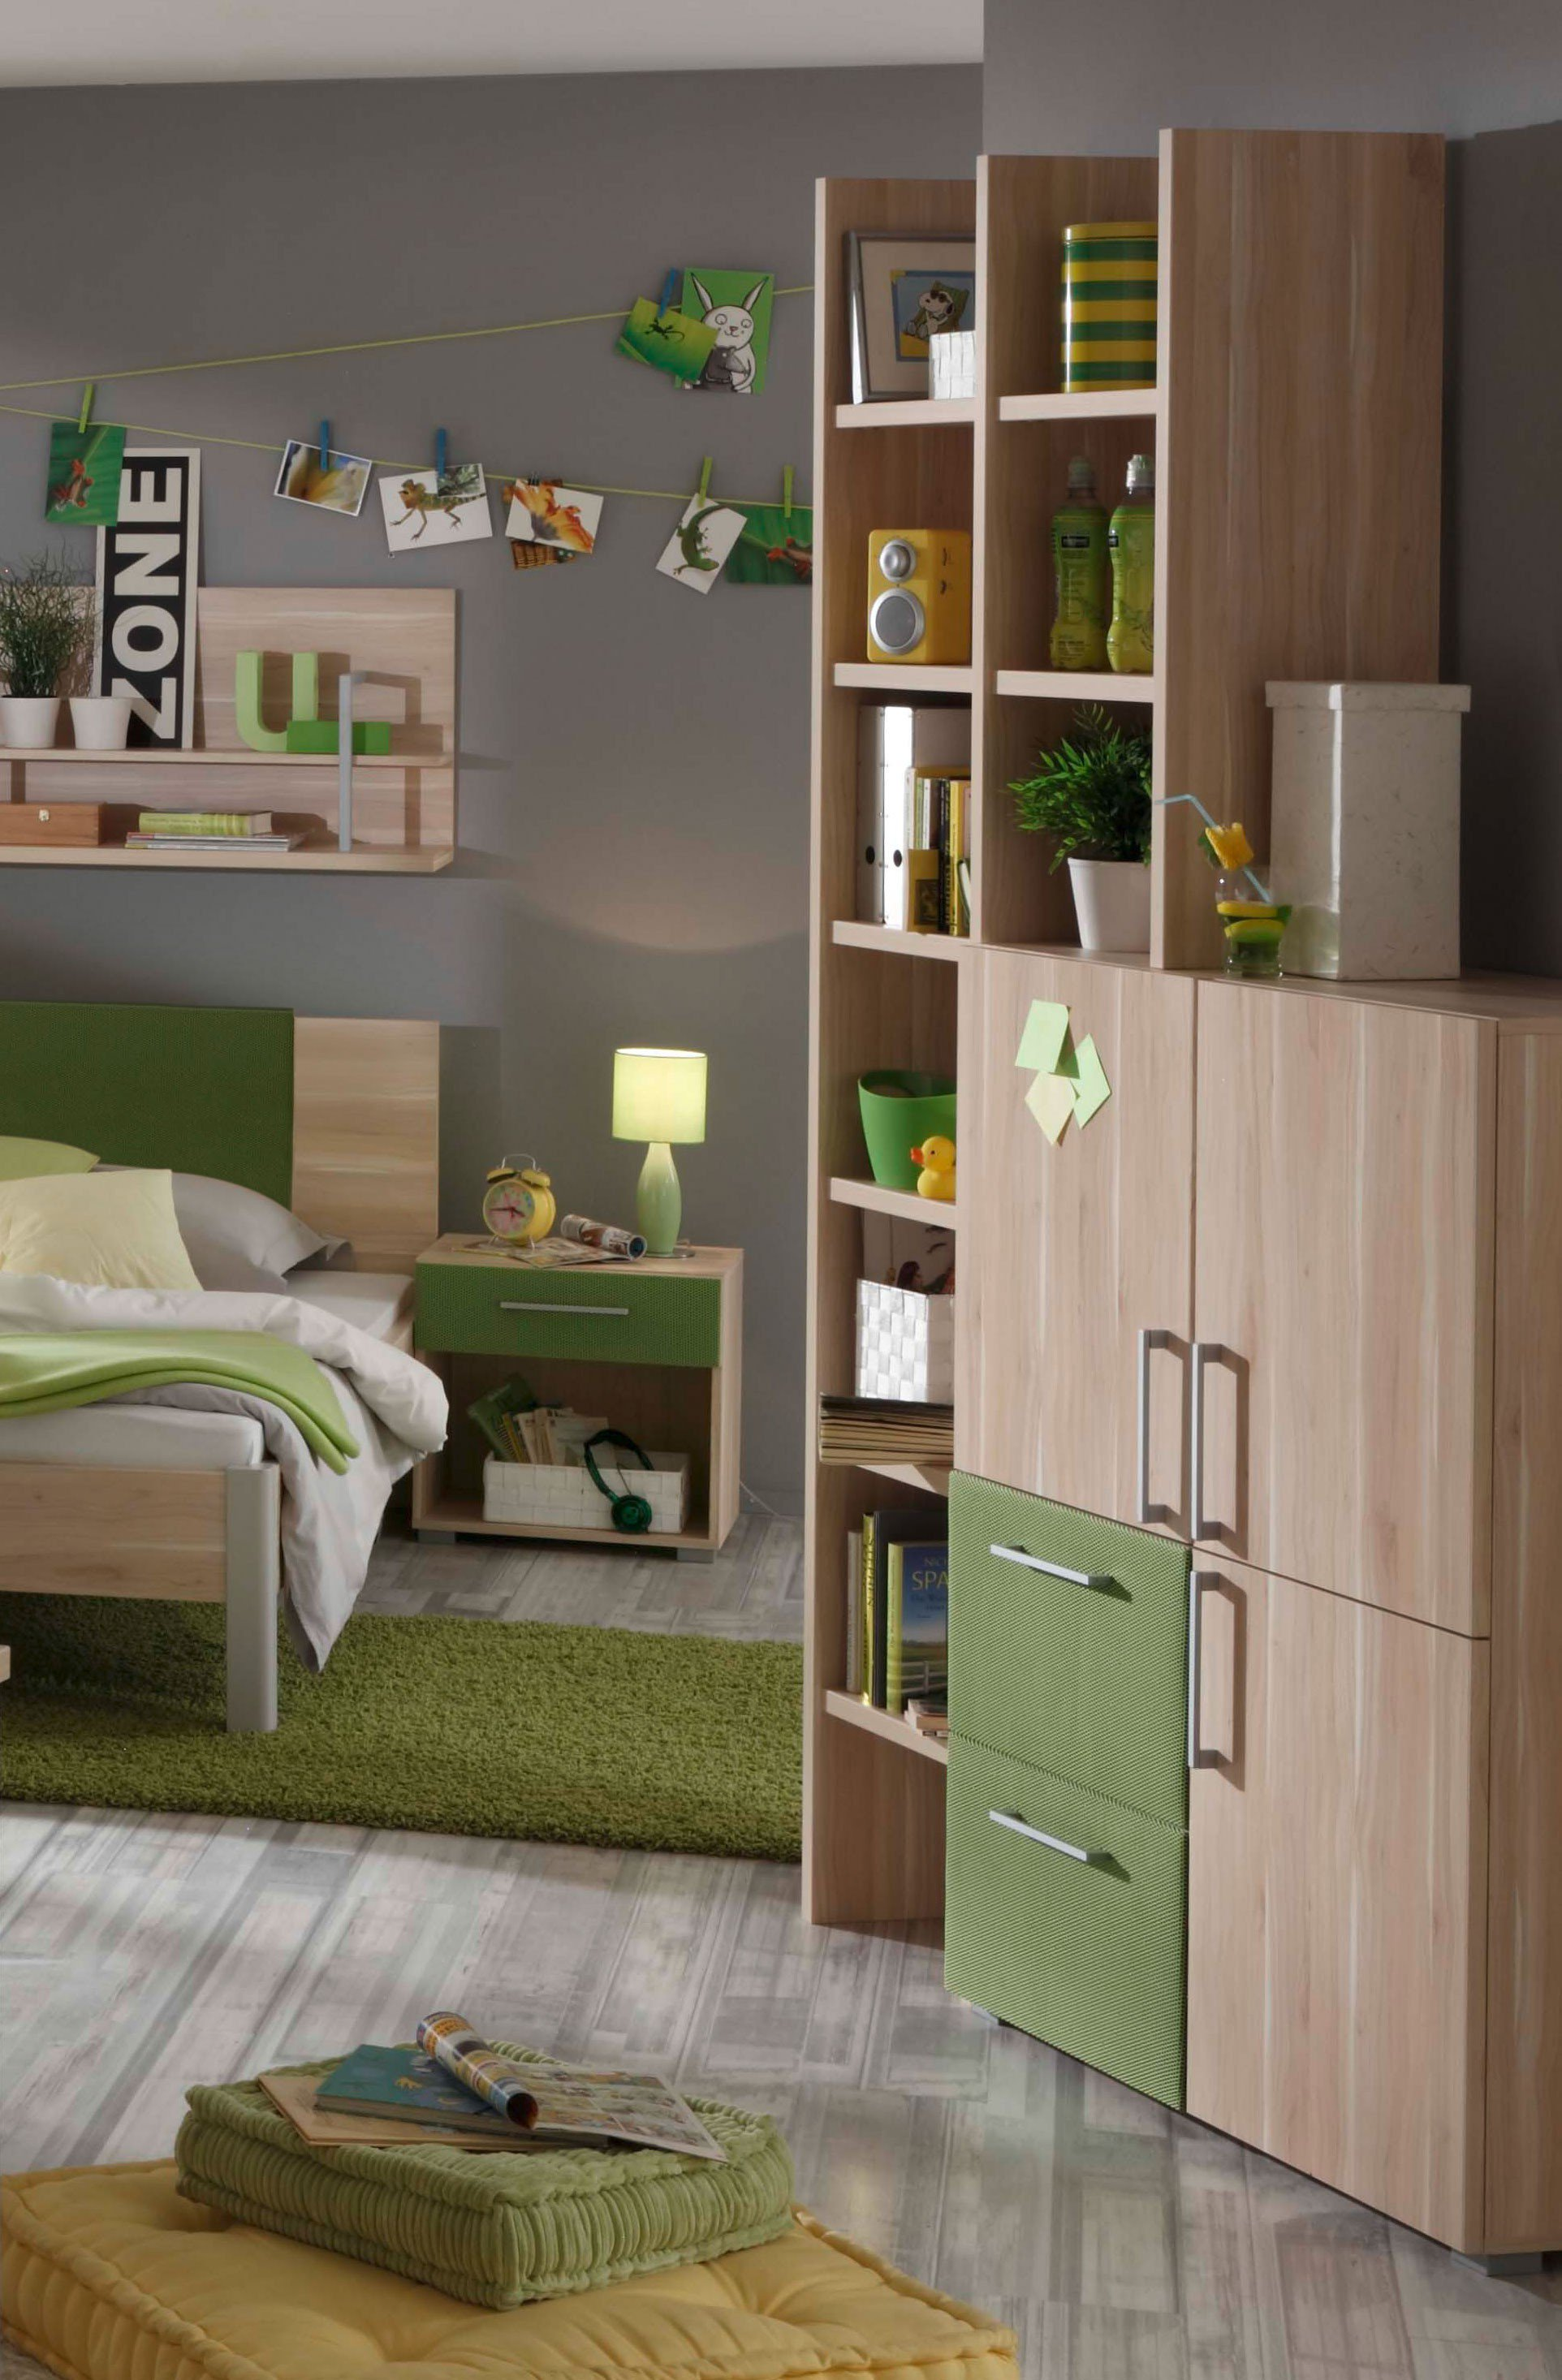 prenneis jugendzimmer enduro plus apfelbaum gr n m bel letz ihr online shop. Black Bedroom Furniture Sets. Home Design Ideas